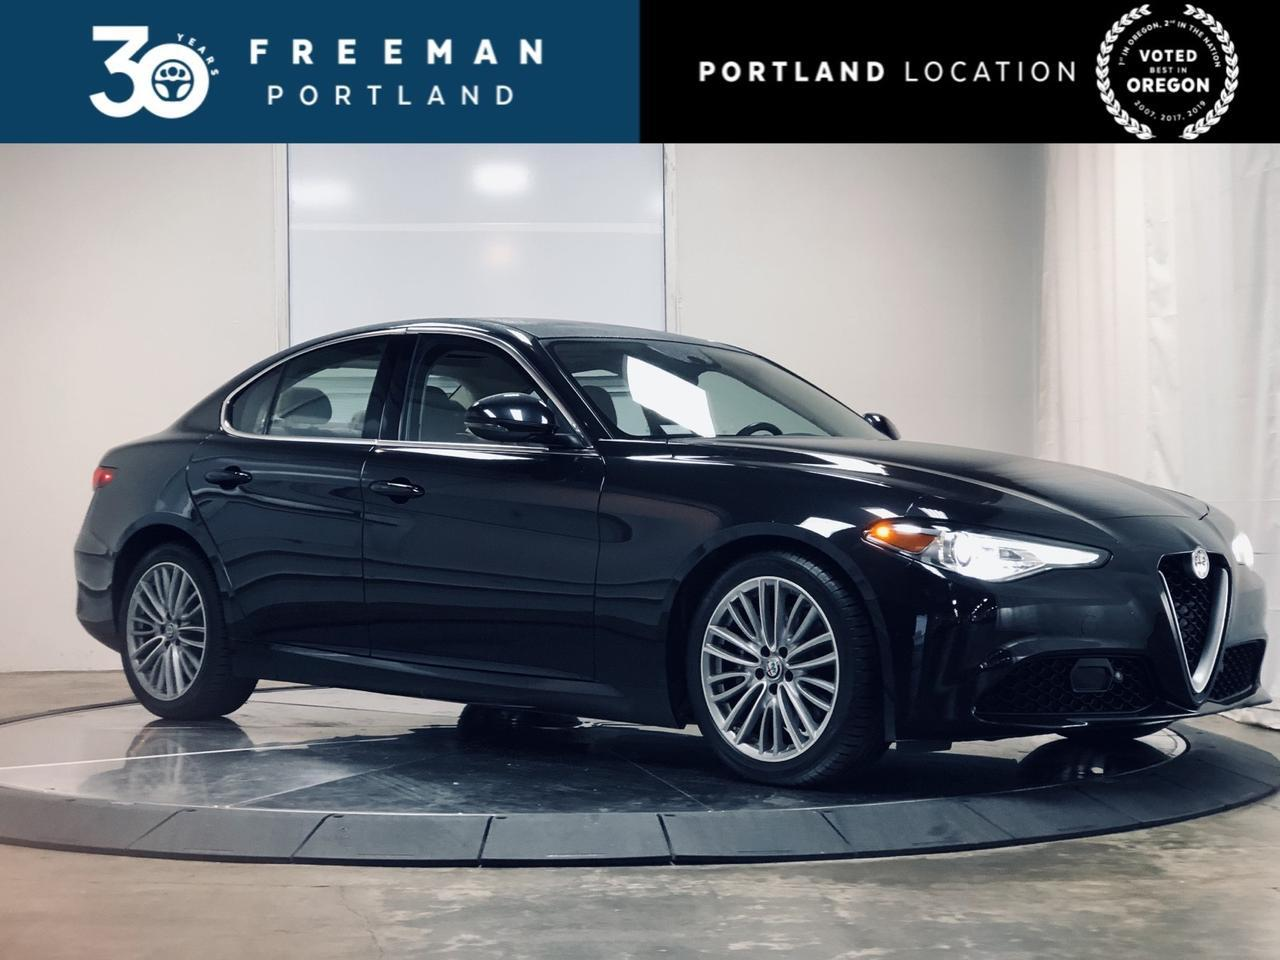 2017 Alfa Romeo Giulia Ti Harman Kardon Blind Spot Assist Portland OR